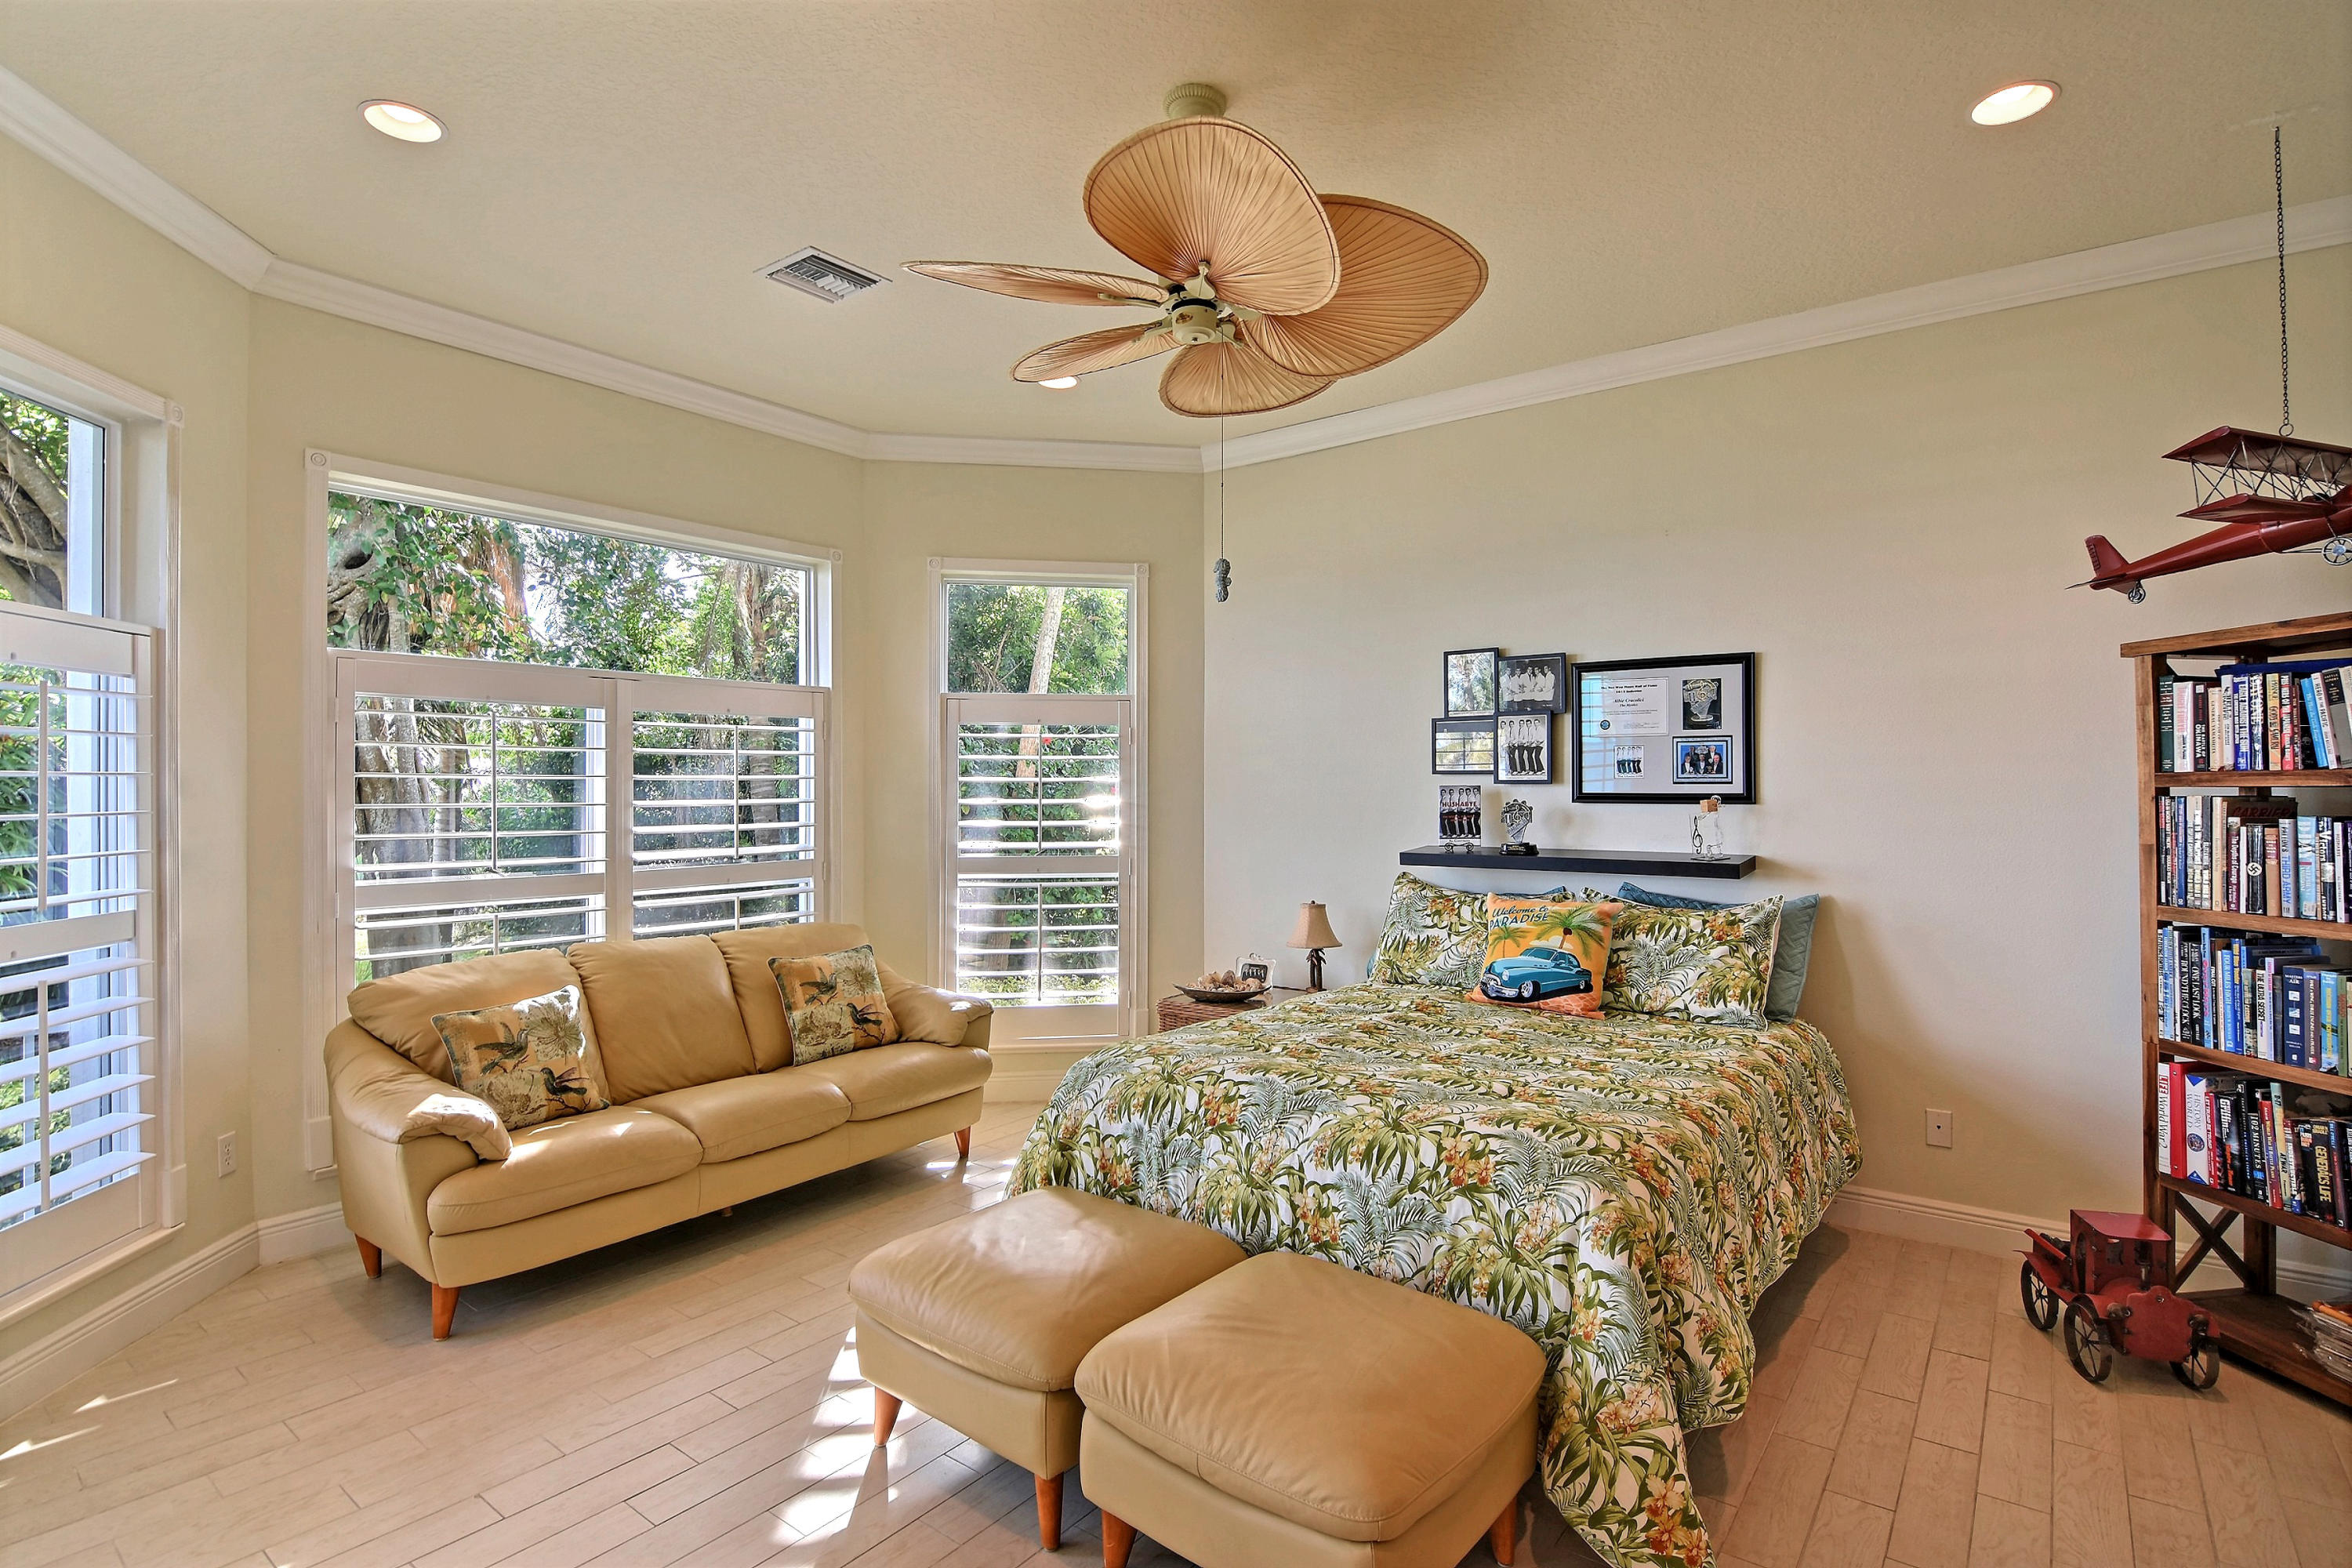 RIVERSIDE SUBDIVISION HOMES FOR SALE